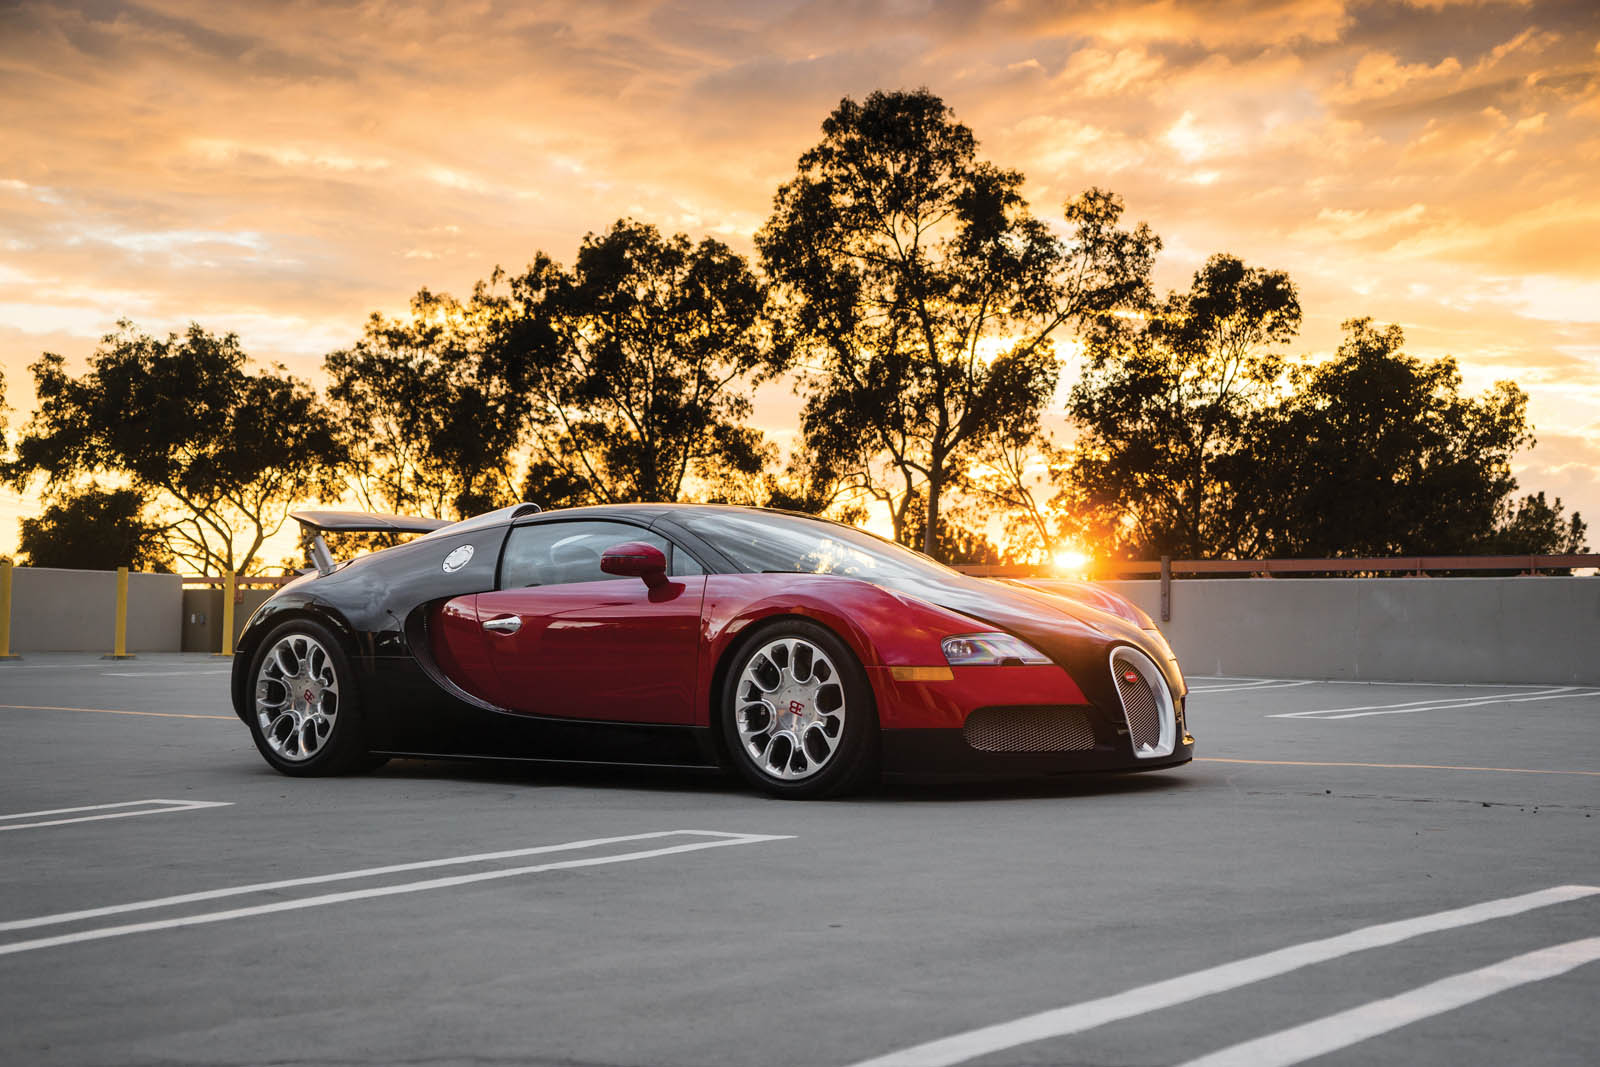 Bugatti_Veyron_Grand_Sport_for_sale_27